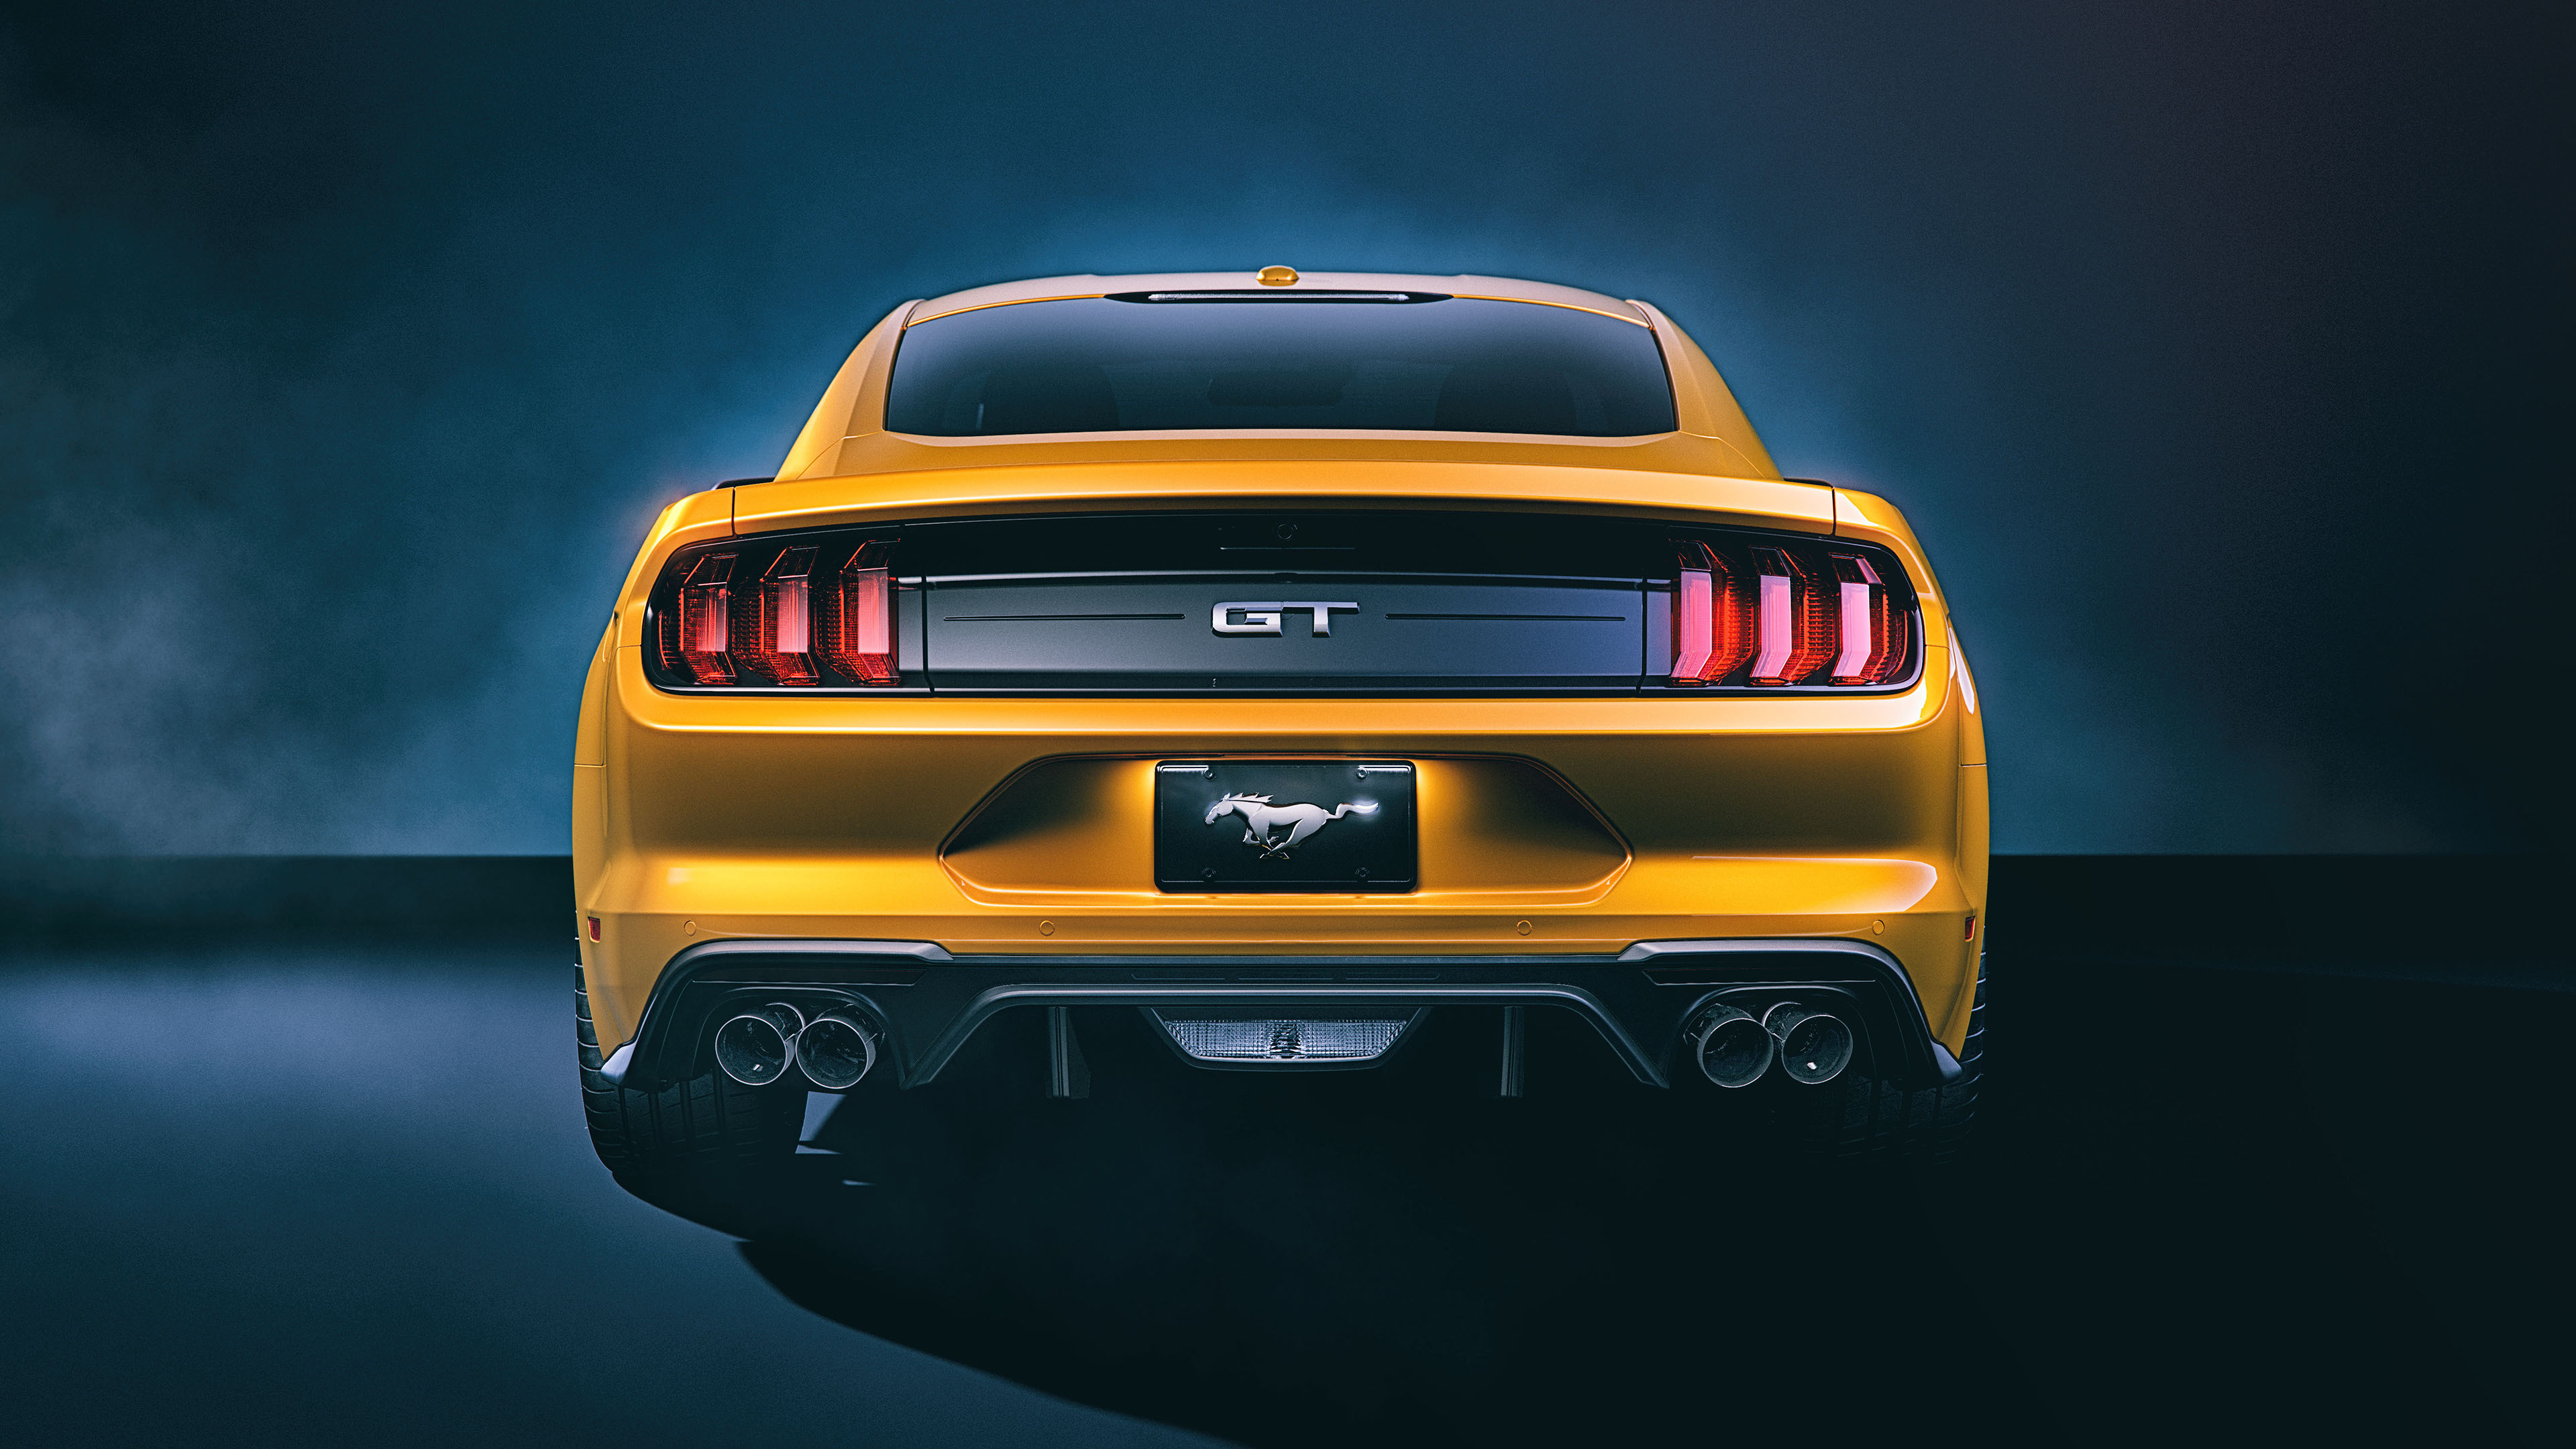 ford mustang gt rear 4k 1559764510 - Ford Mustang GT Rear 4k - mustang wallpapers, hd-wallpapers, ford wallpapers, ford mustang wallpapers, behance wallpapers, 4k-wallpapers, 2018 cars wallpapers